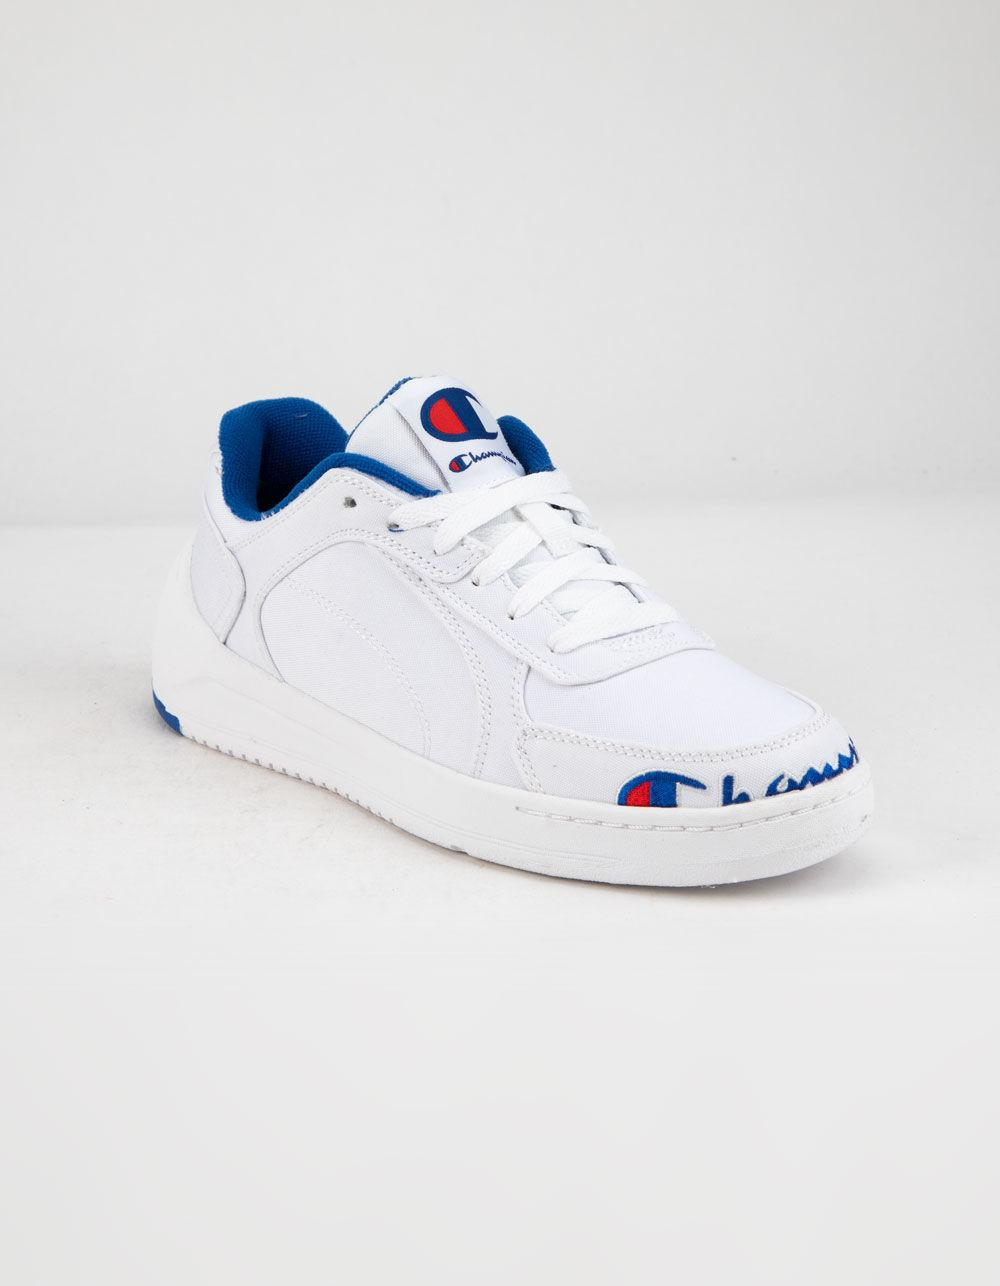 5919c985c6729 Lyst - Champion Super C Court Low Womens Shoes in White - Save 1%